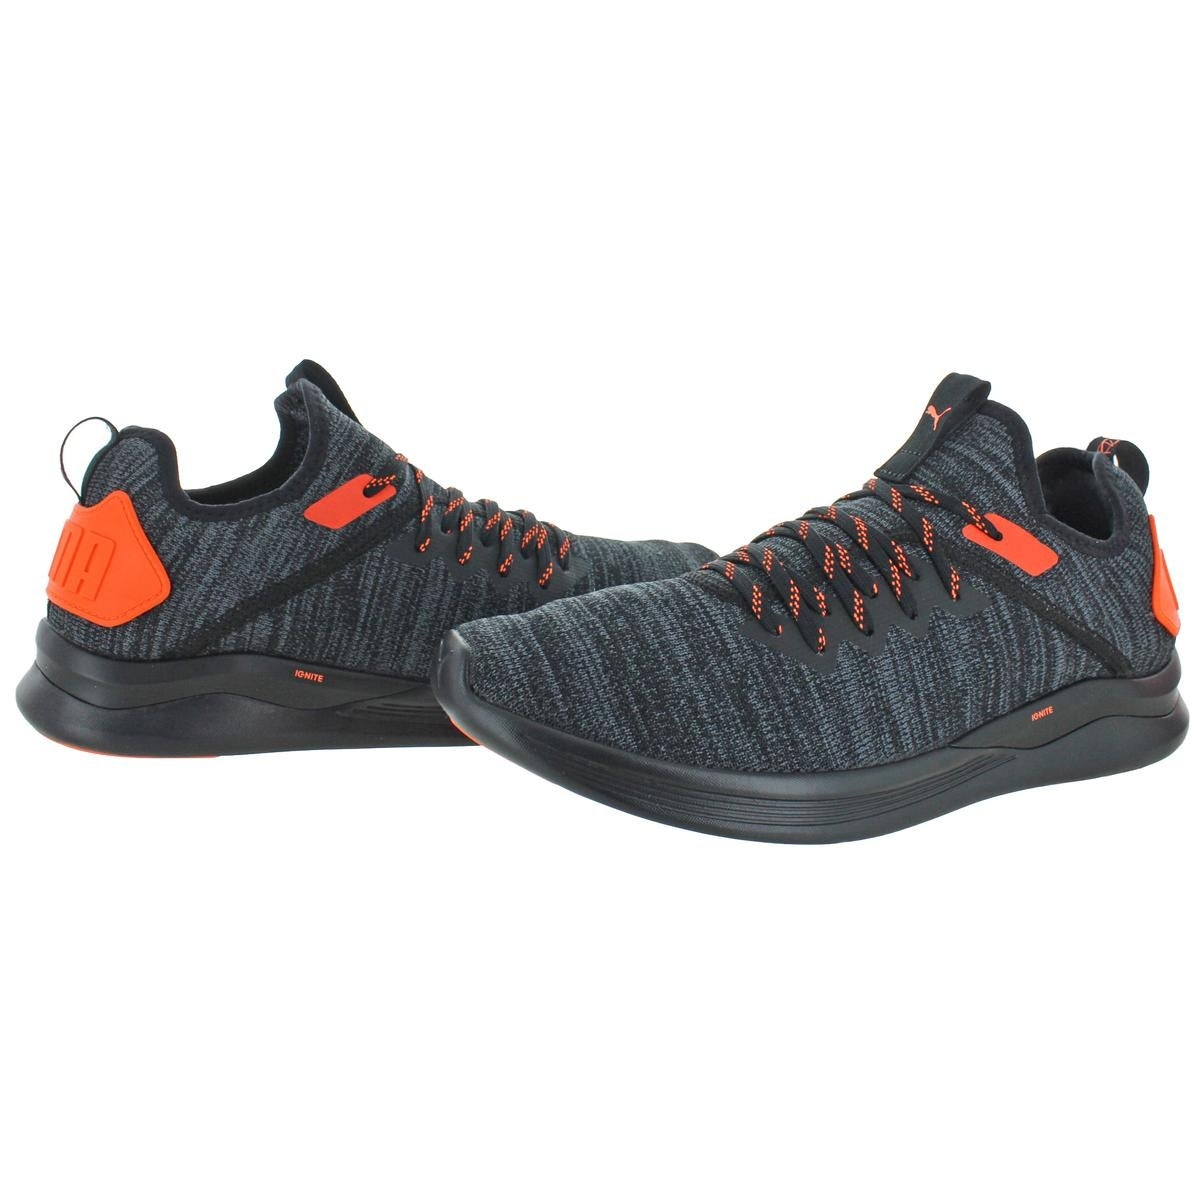 new arrival 362ff 90a49 Puma Mens IGNITE Flash evoKNIT UNREST Trainers Lifestyle Athleisure